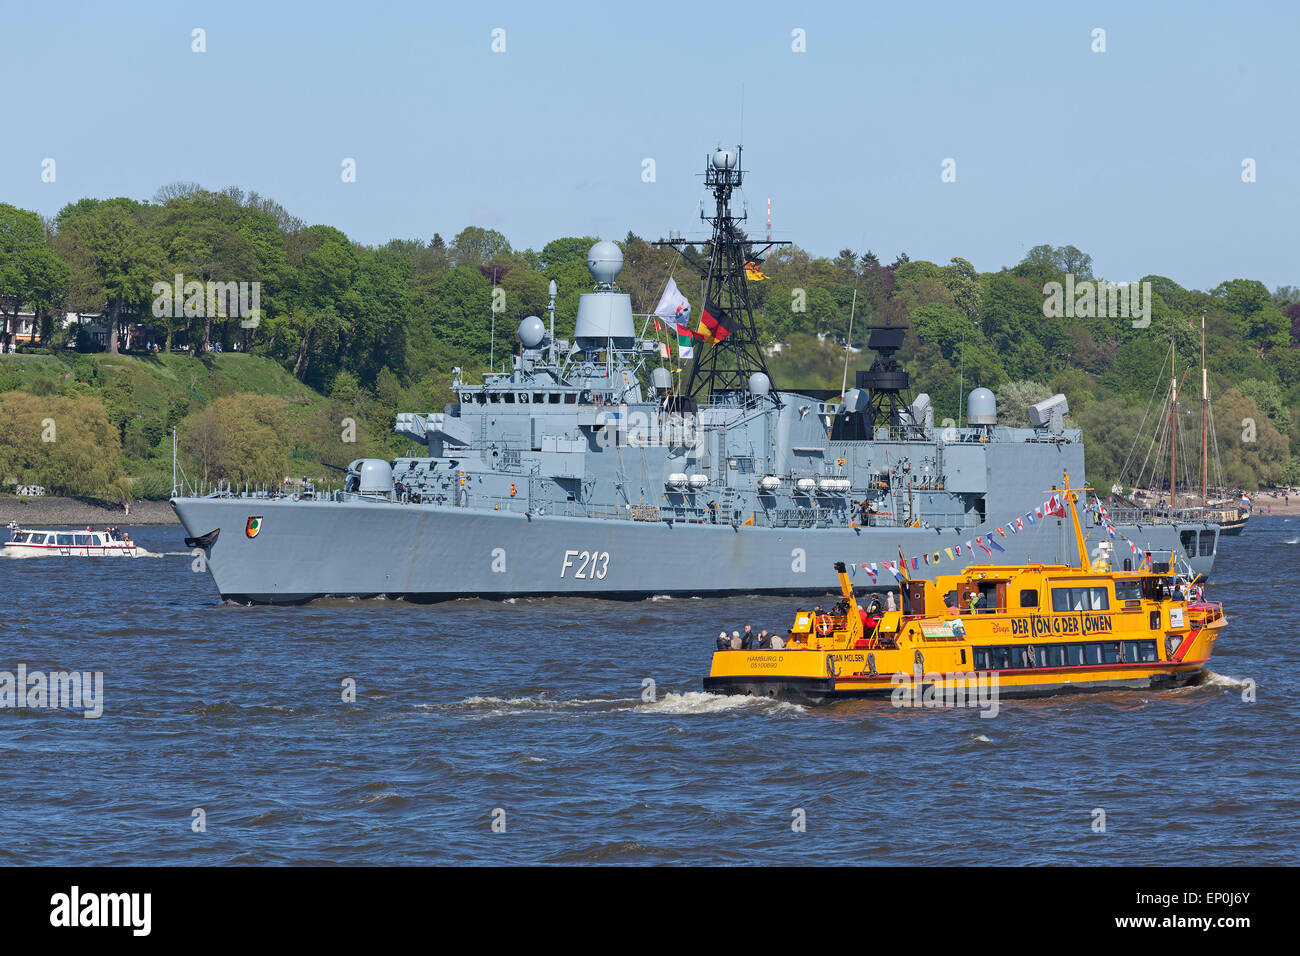 Frigate ´Augsburg´ on River Elbe during 826. Harbour Birthday, Hamburg, Germany - Stock Image